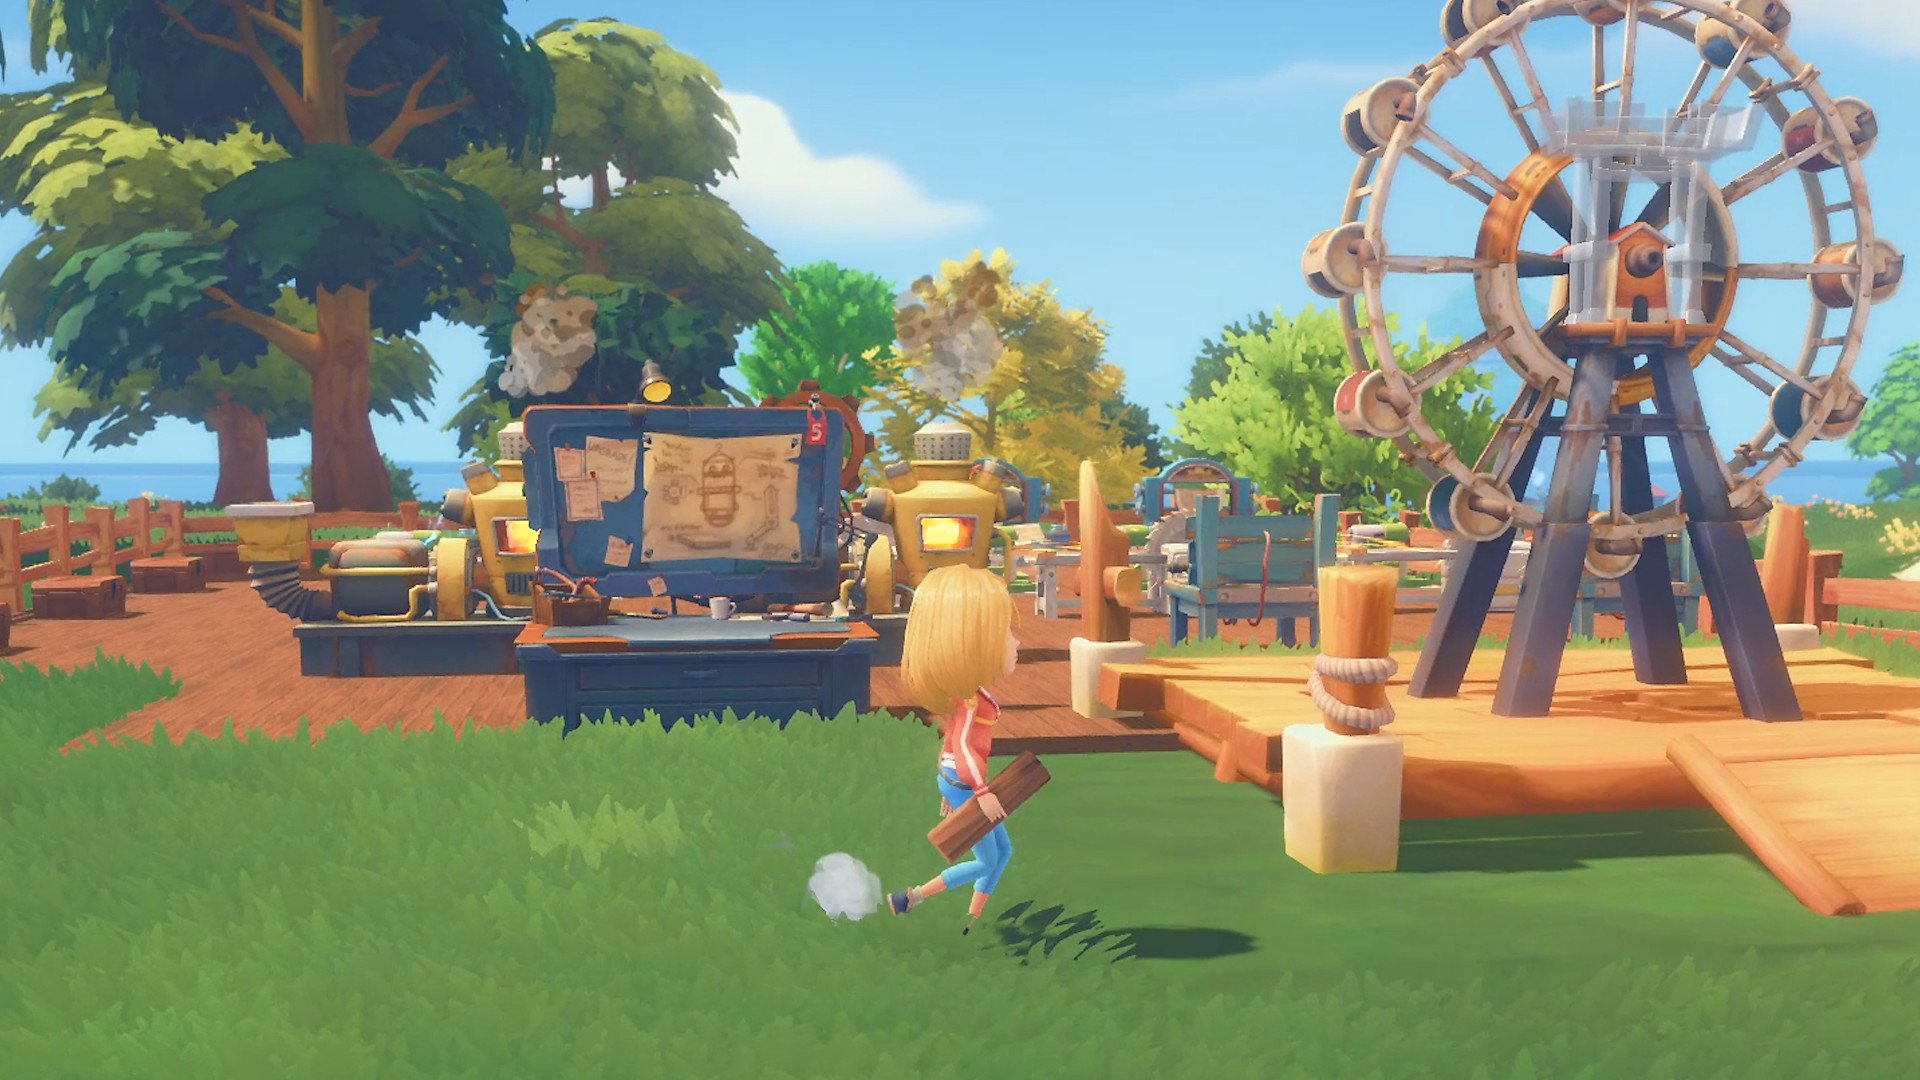 Make And Take Room In A Box Elizabeth Farm: My Time At Portia Game